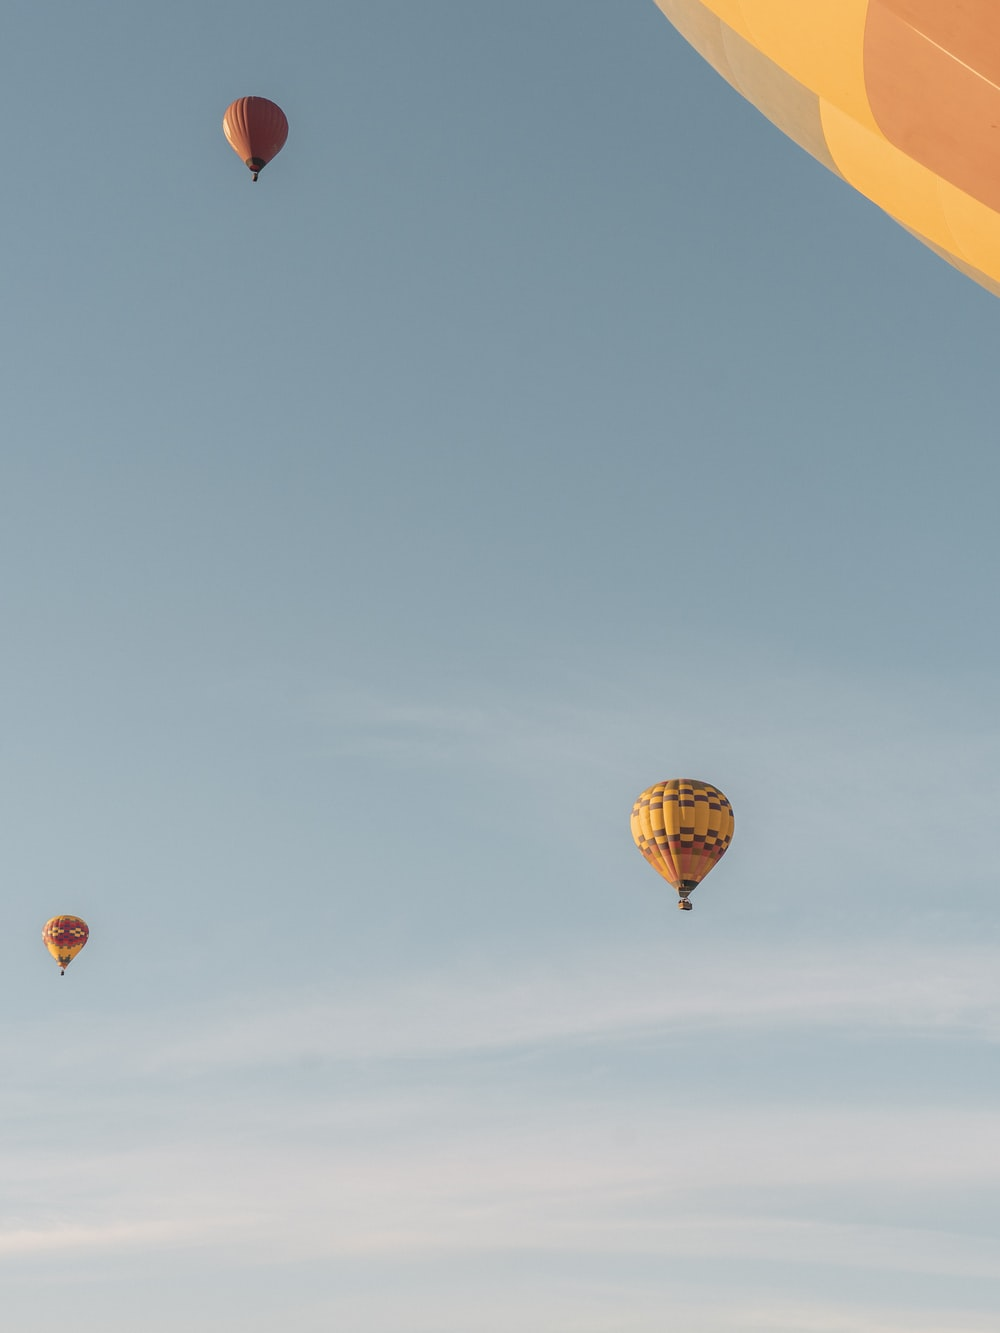 red and yellow hot air balloon in mid air under blue sky during daytime